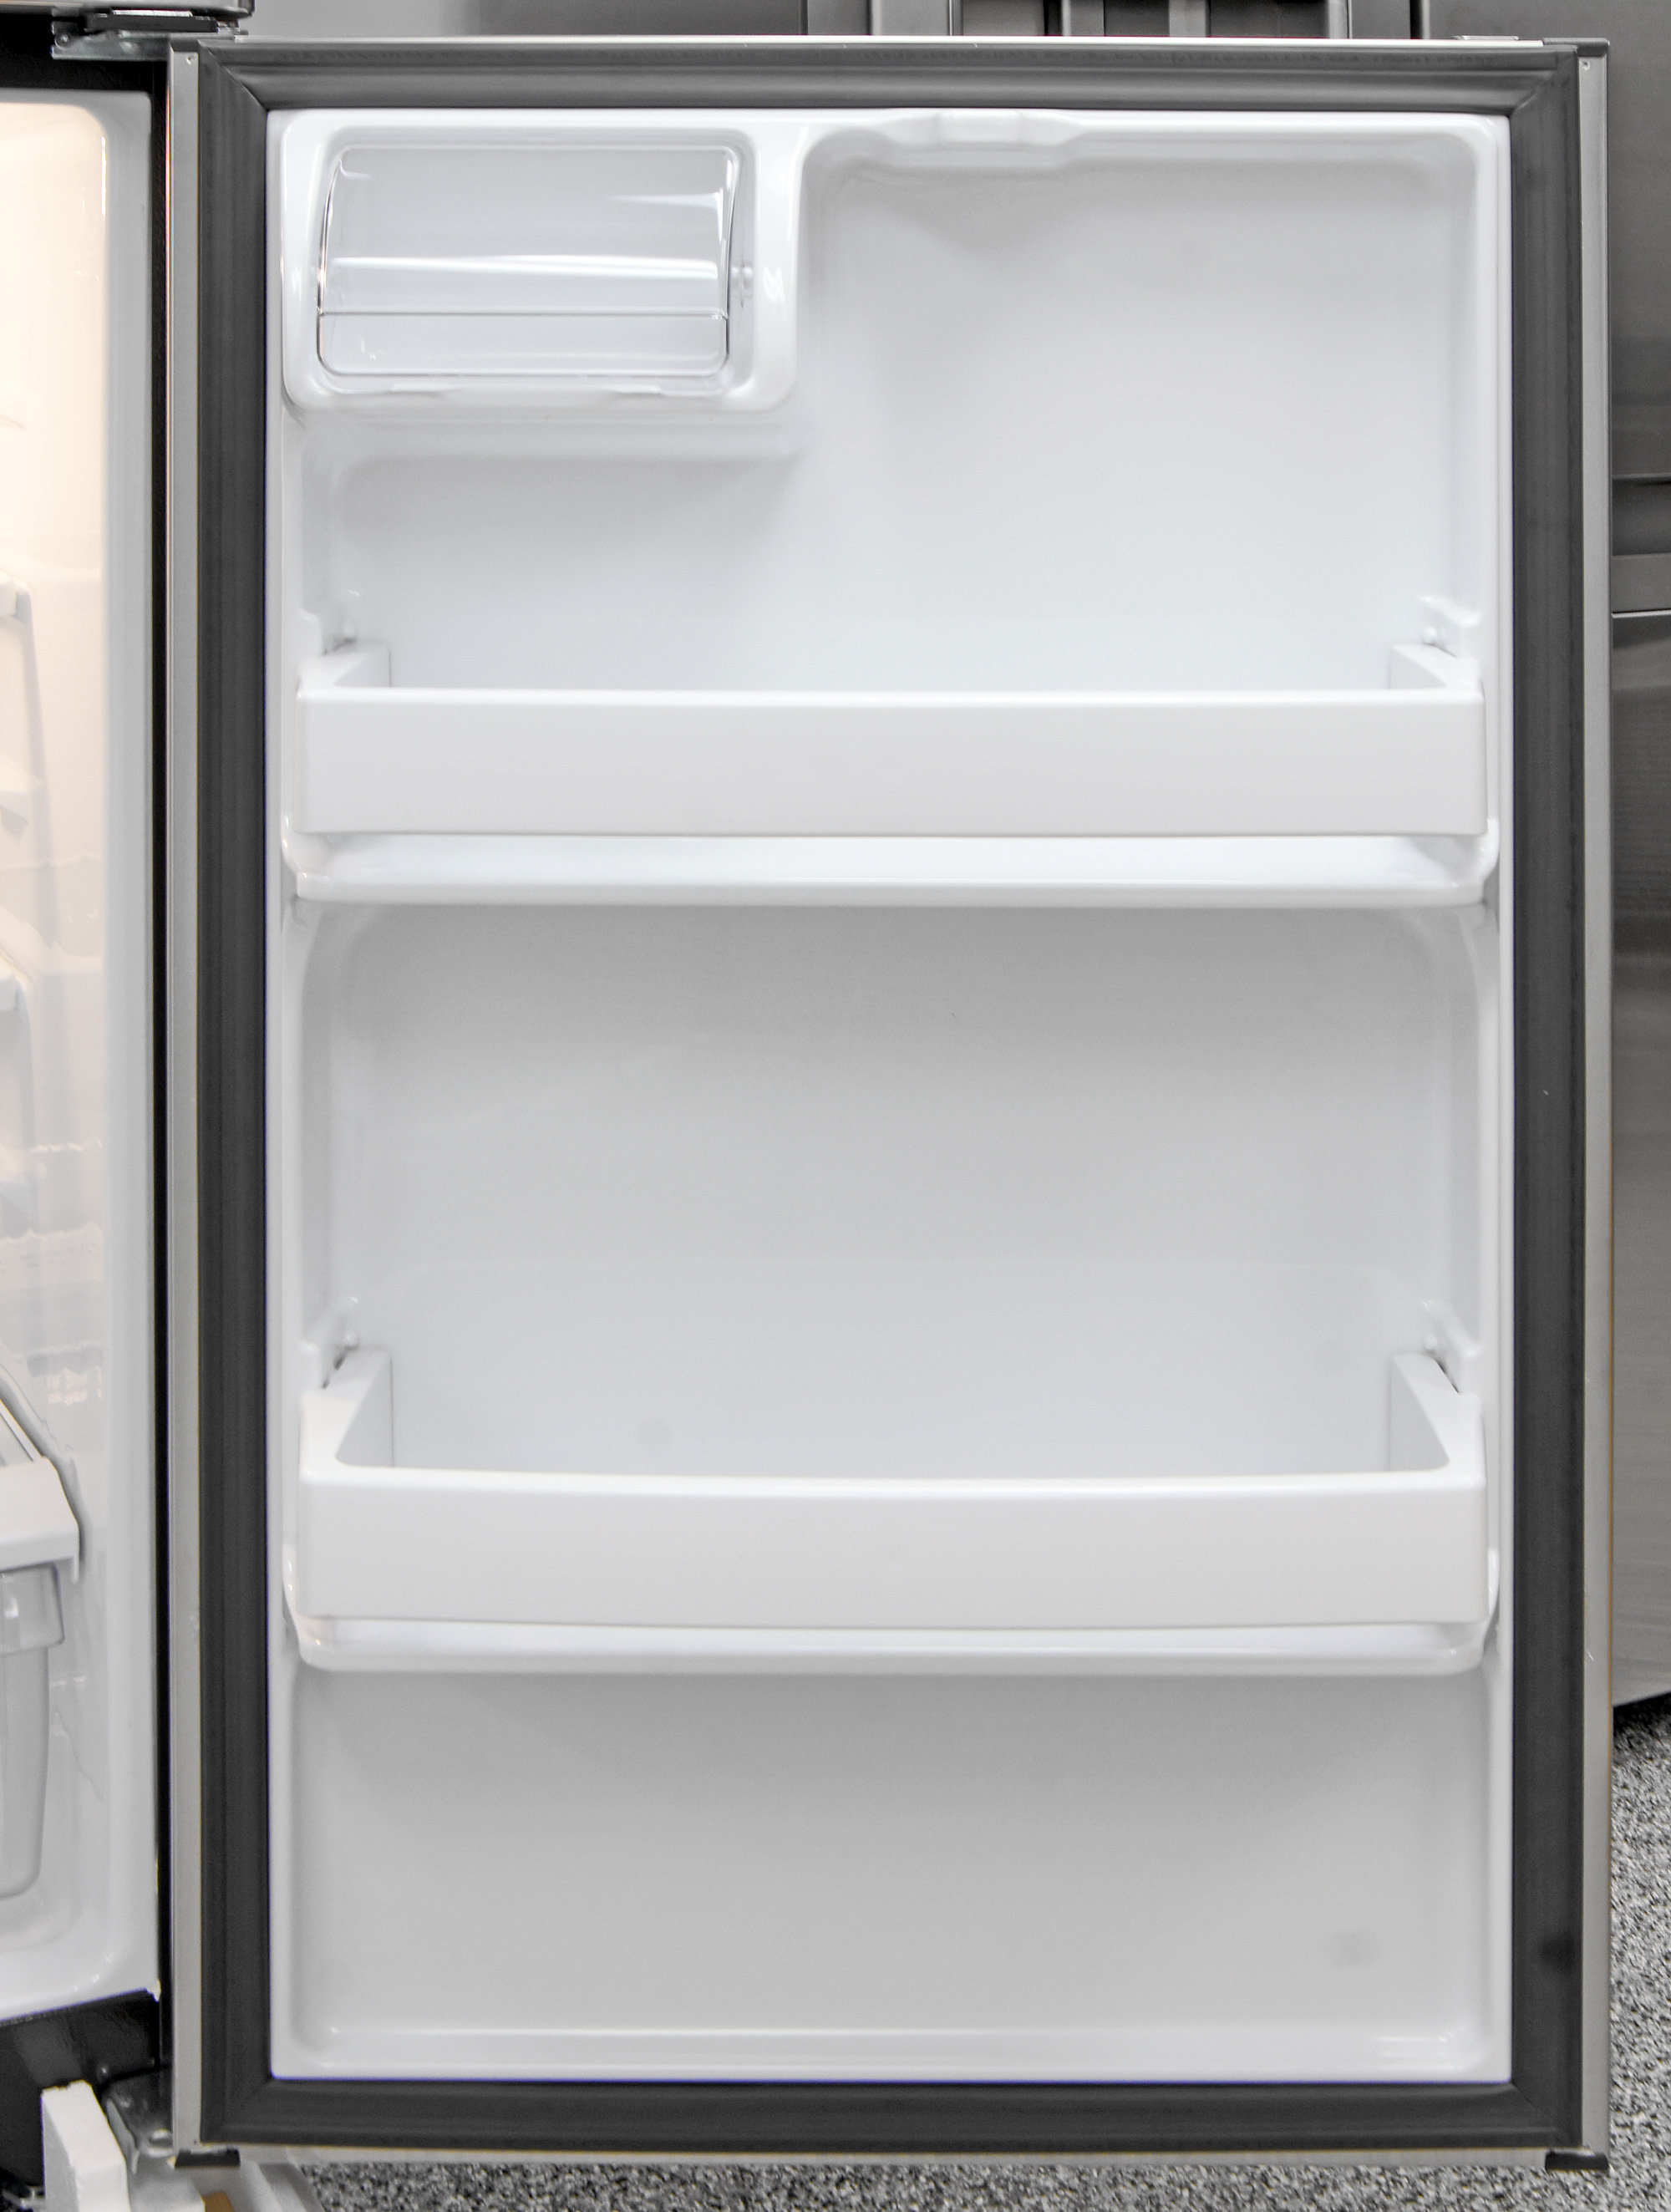 The GE GTE16GSHSS's fridge door storage isn't adjustable, but can still accommodate a variety of items.